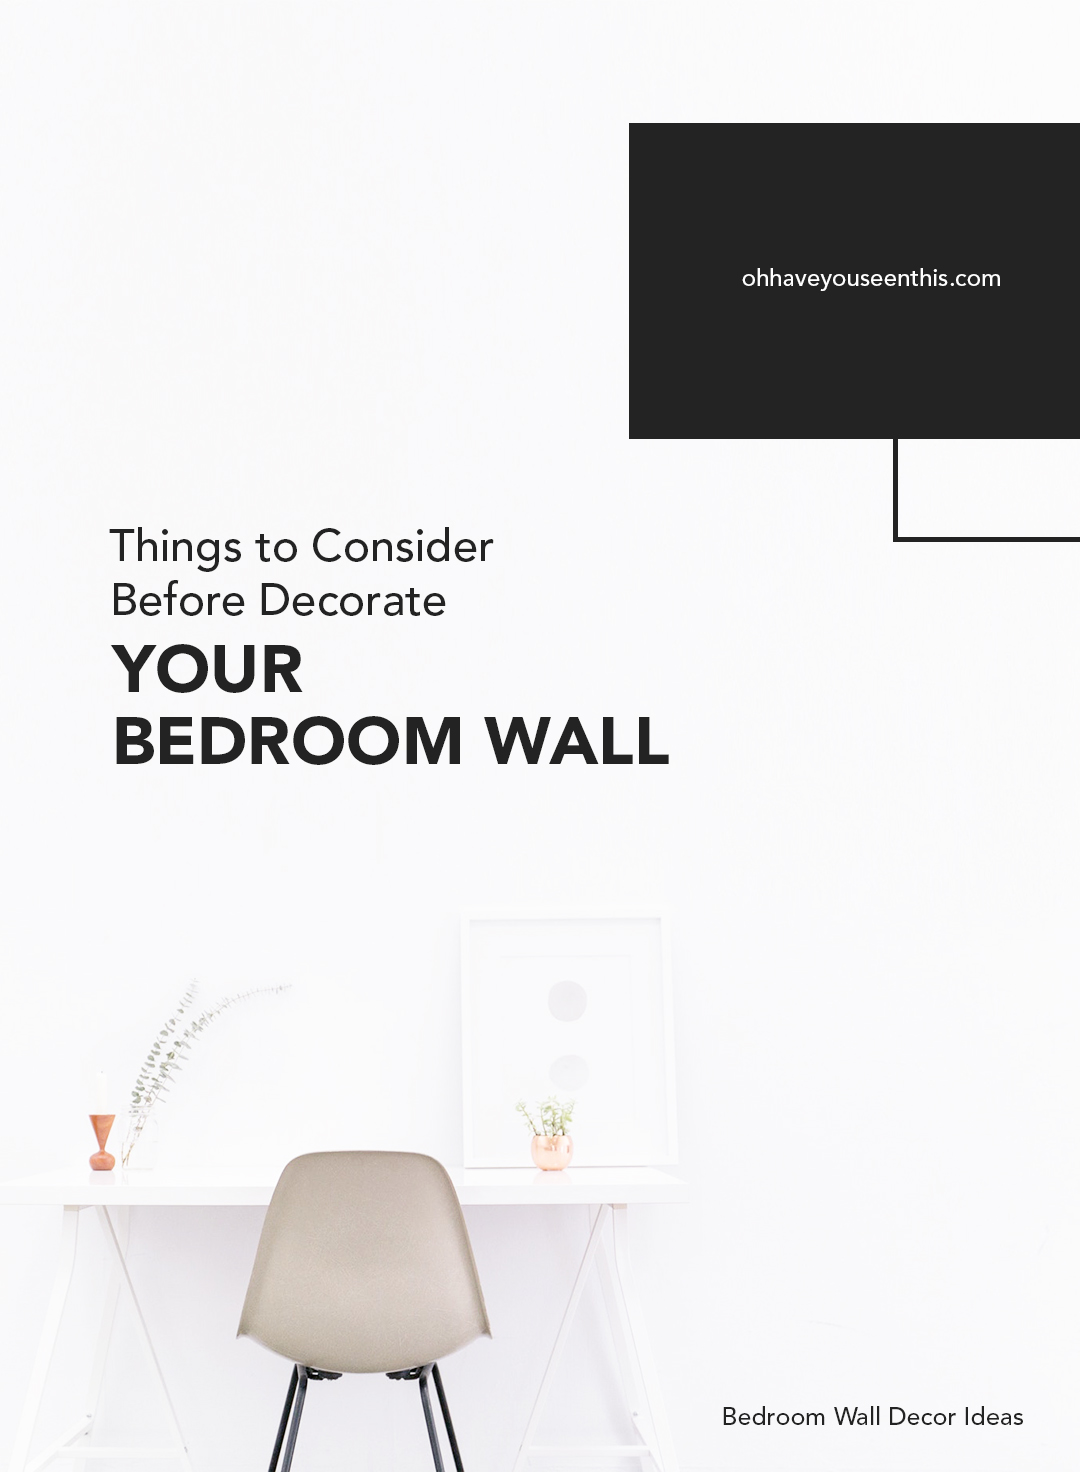 Thing to Consider Before Decorate Your Bedroom Wall